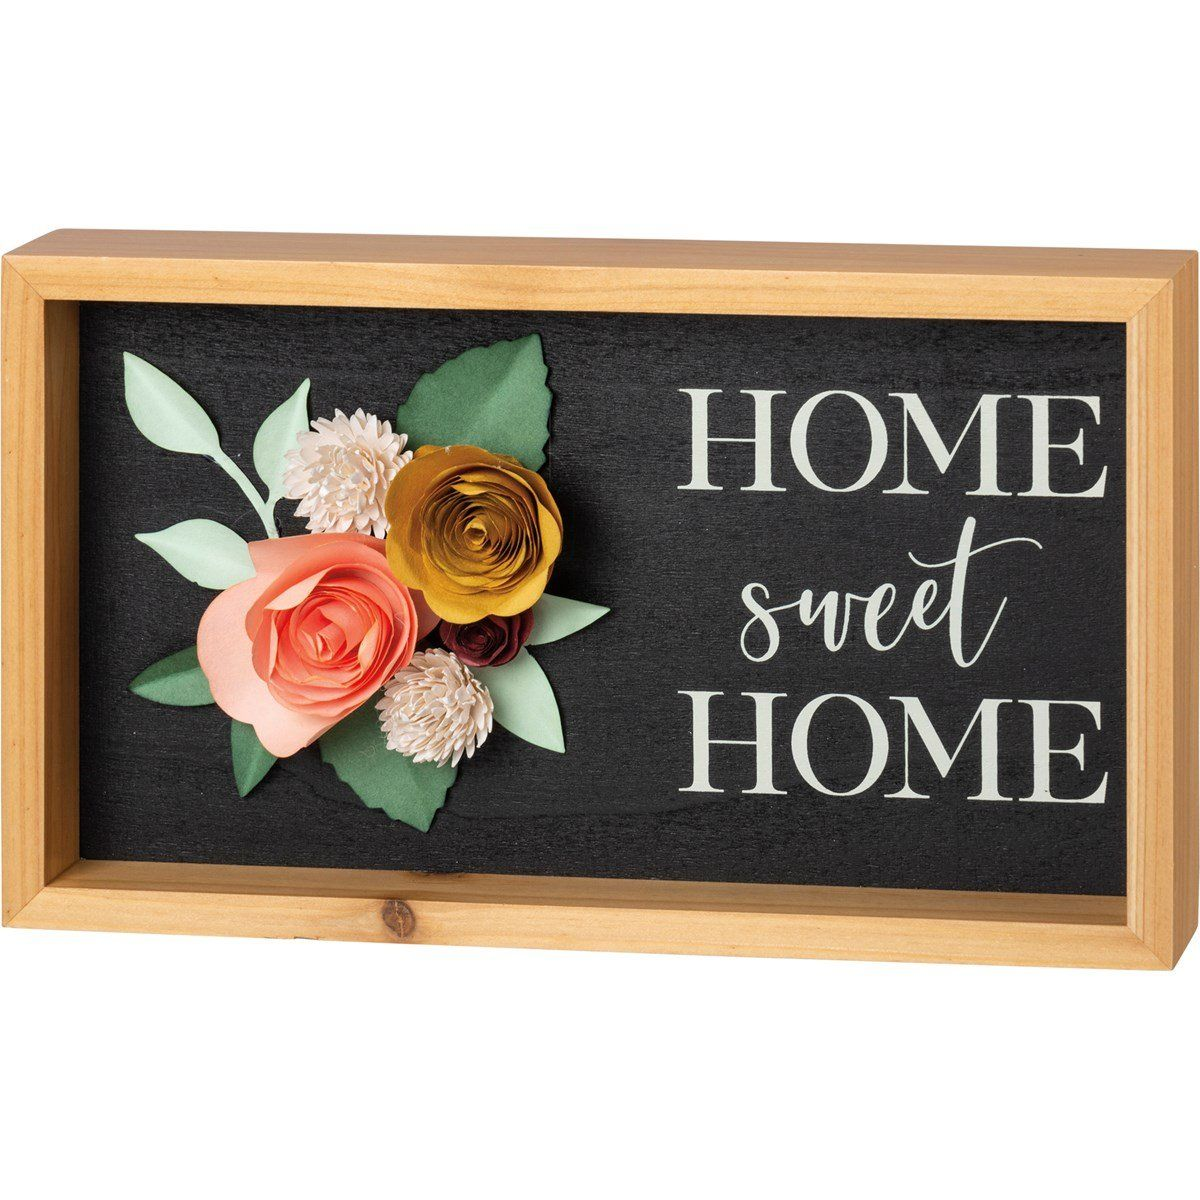 Home Sweet Home Inset Box Sign